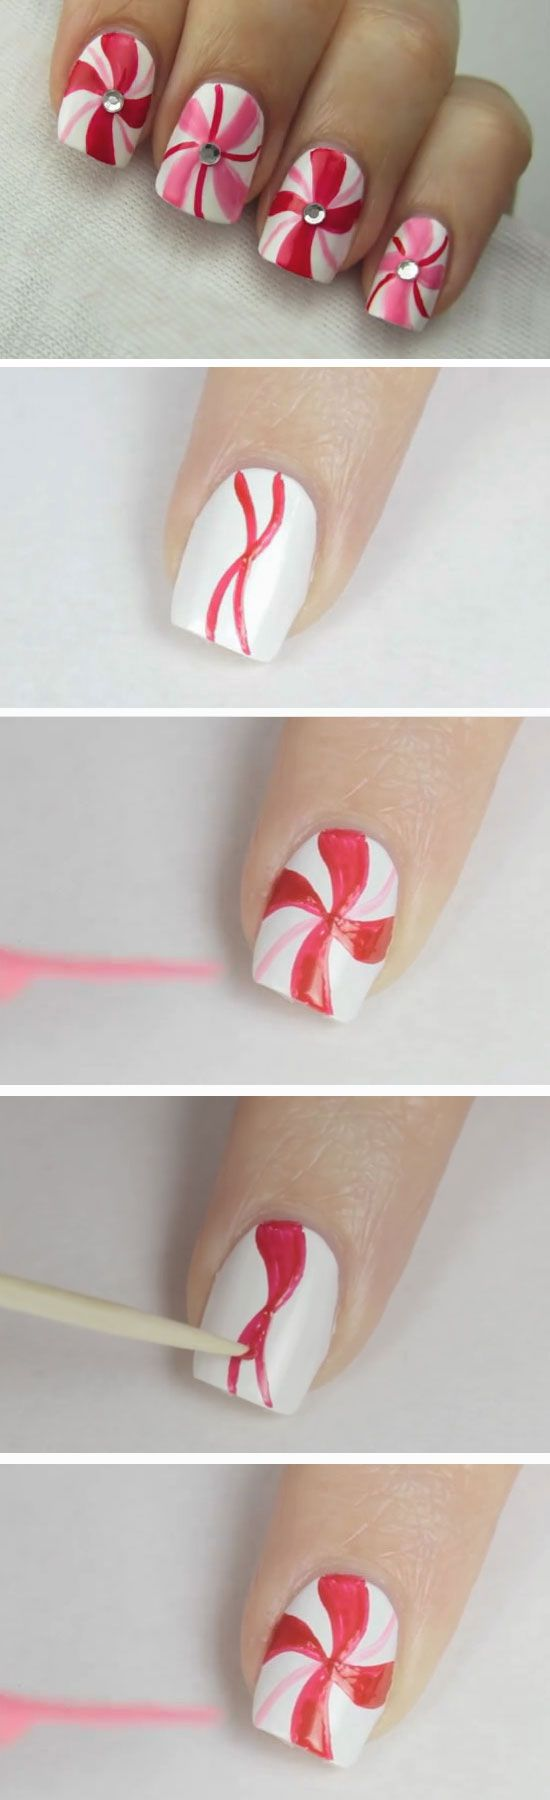 Best Easy Lovely Christmas Nail Designs Diy Nail Art Tutorials